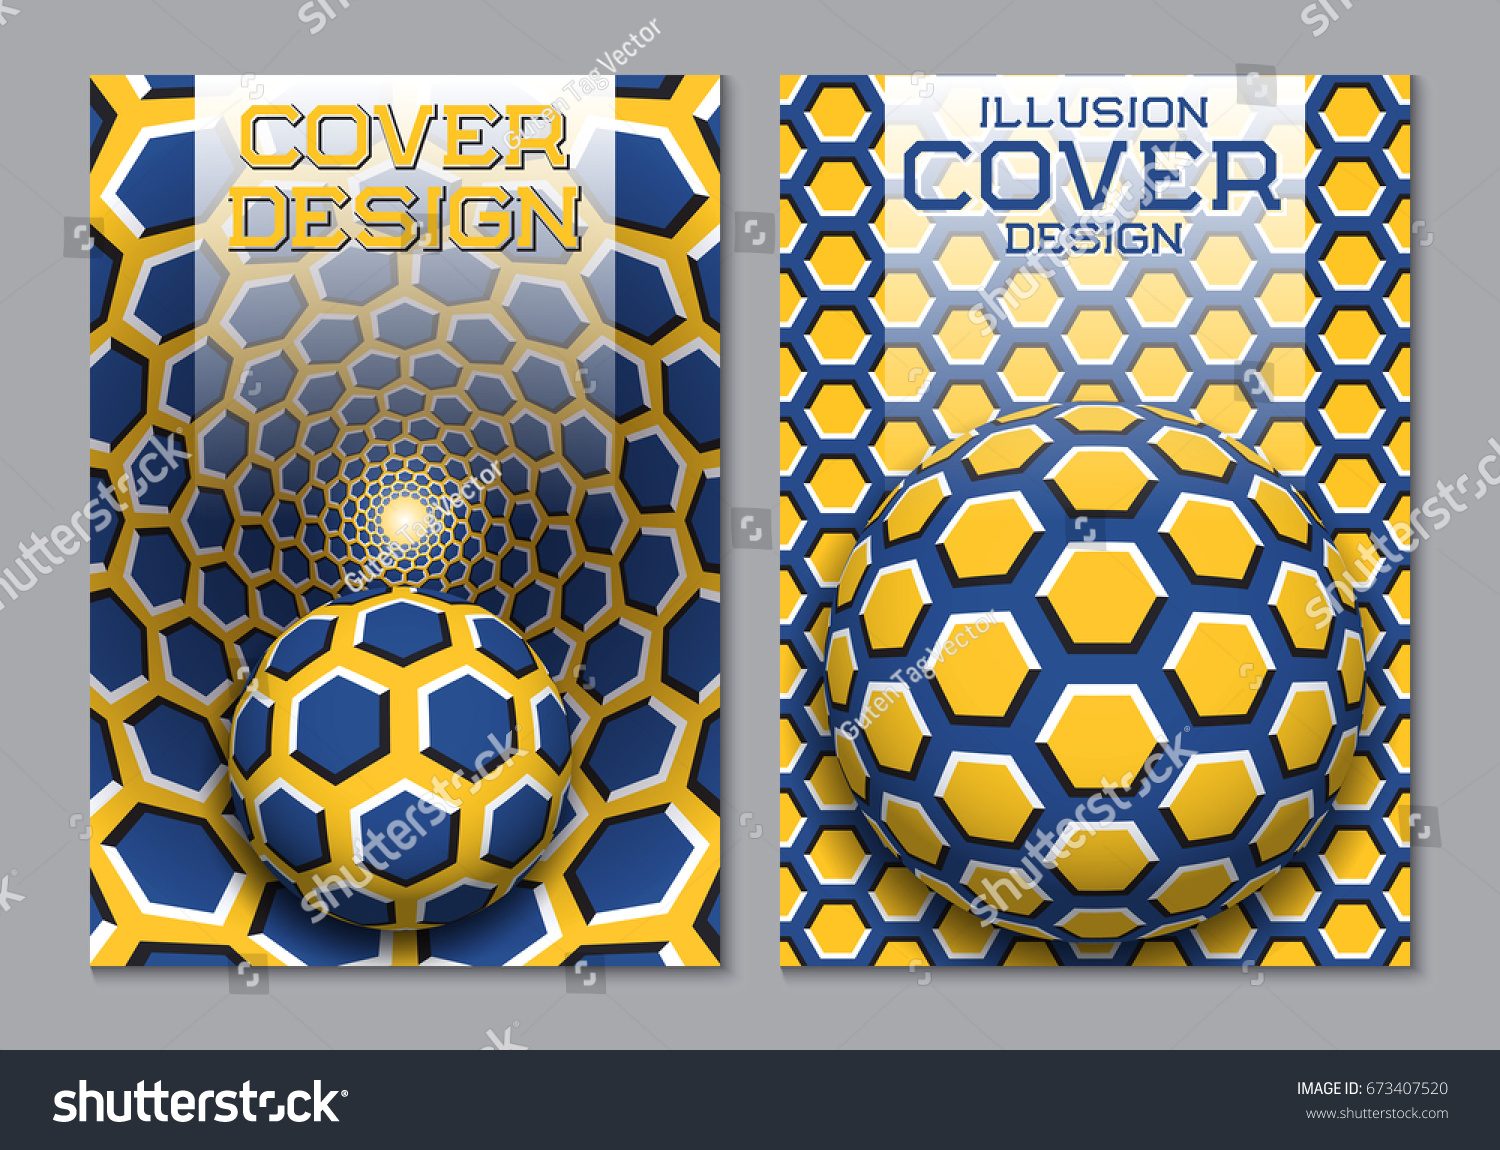 Book color scheme - Blue Yellow Color Scheme Book Cover Design Template With Optical Motion Illusion Elements